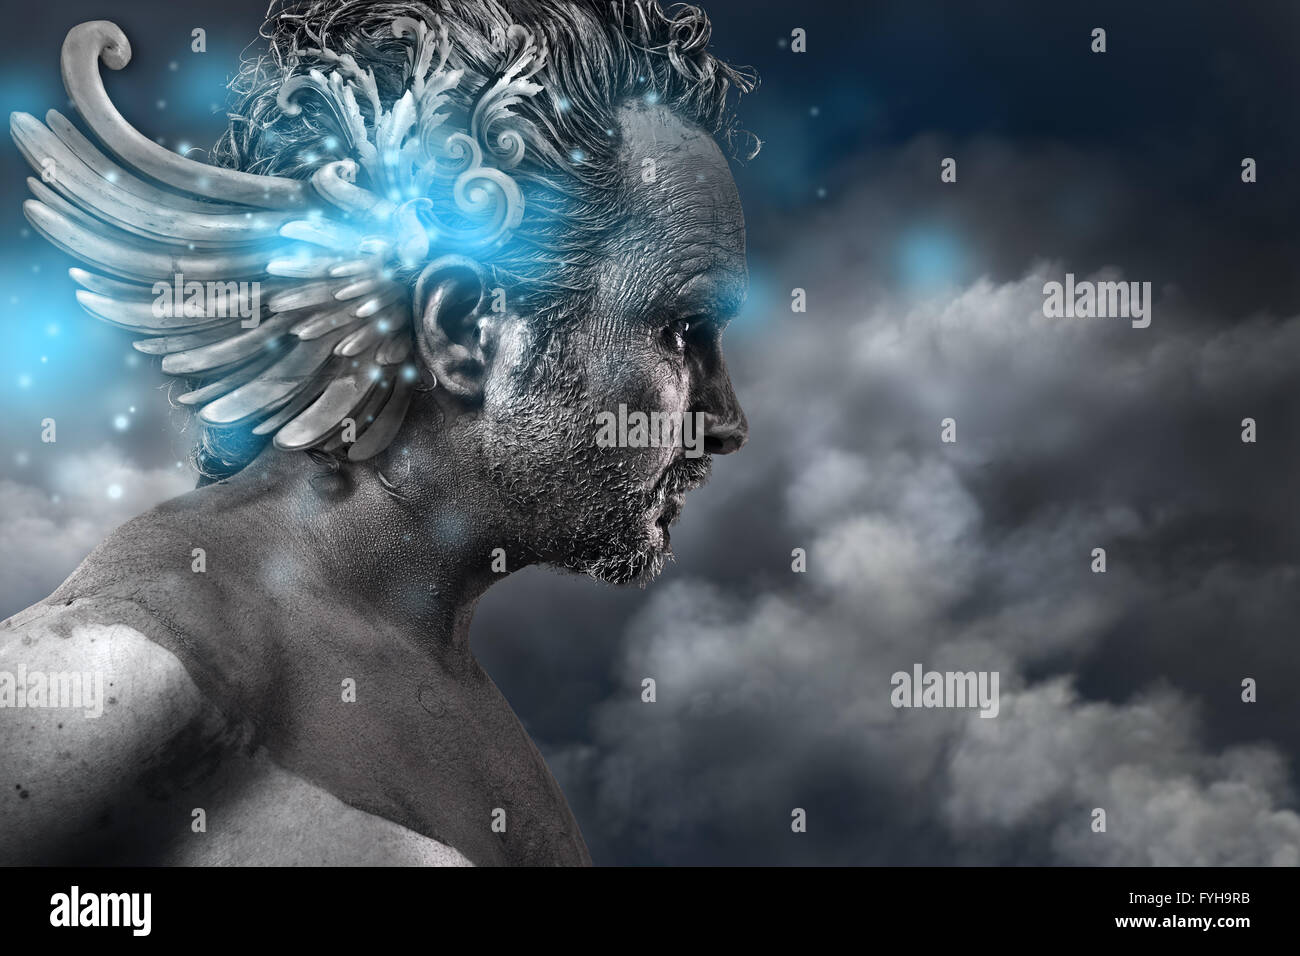 Ancient hero, fantasy image, ancient gods classic style with blue light effects - Stock Image